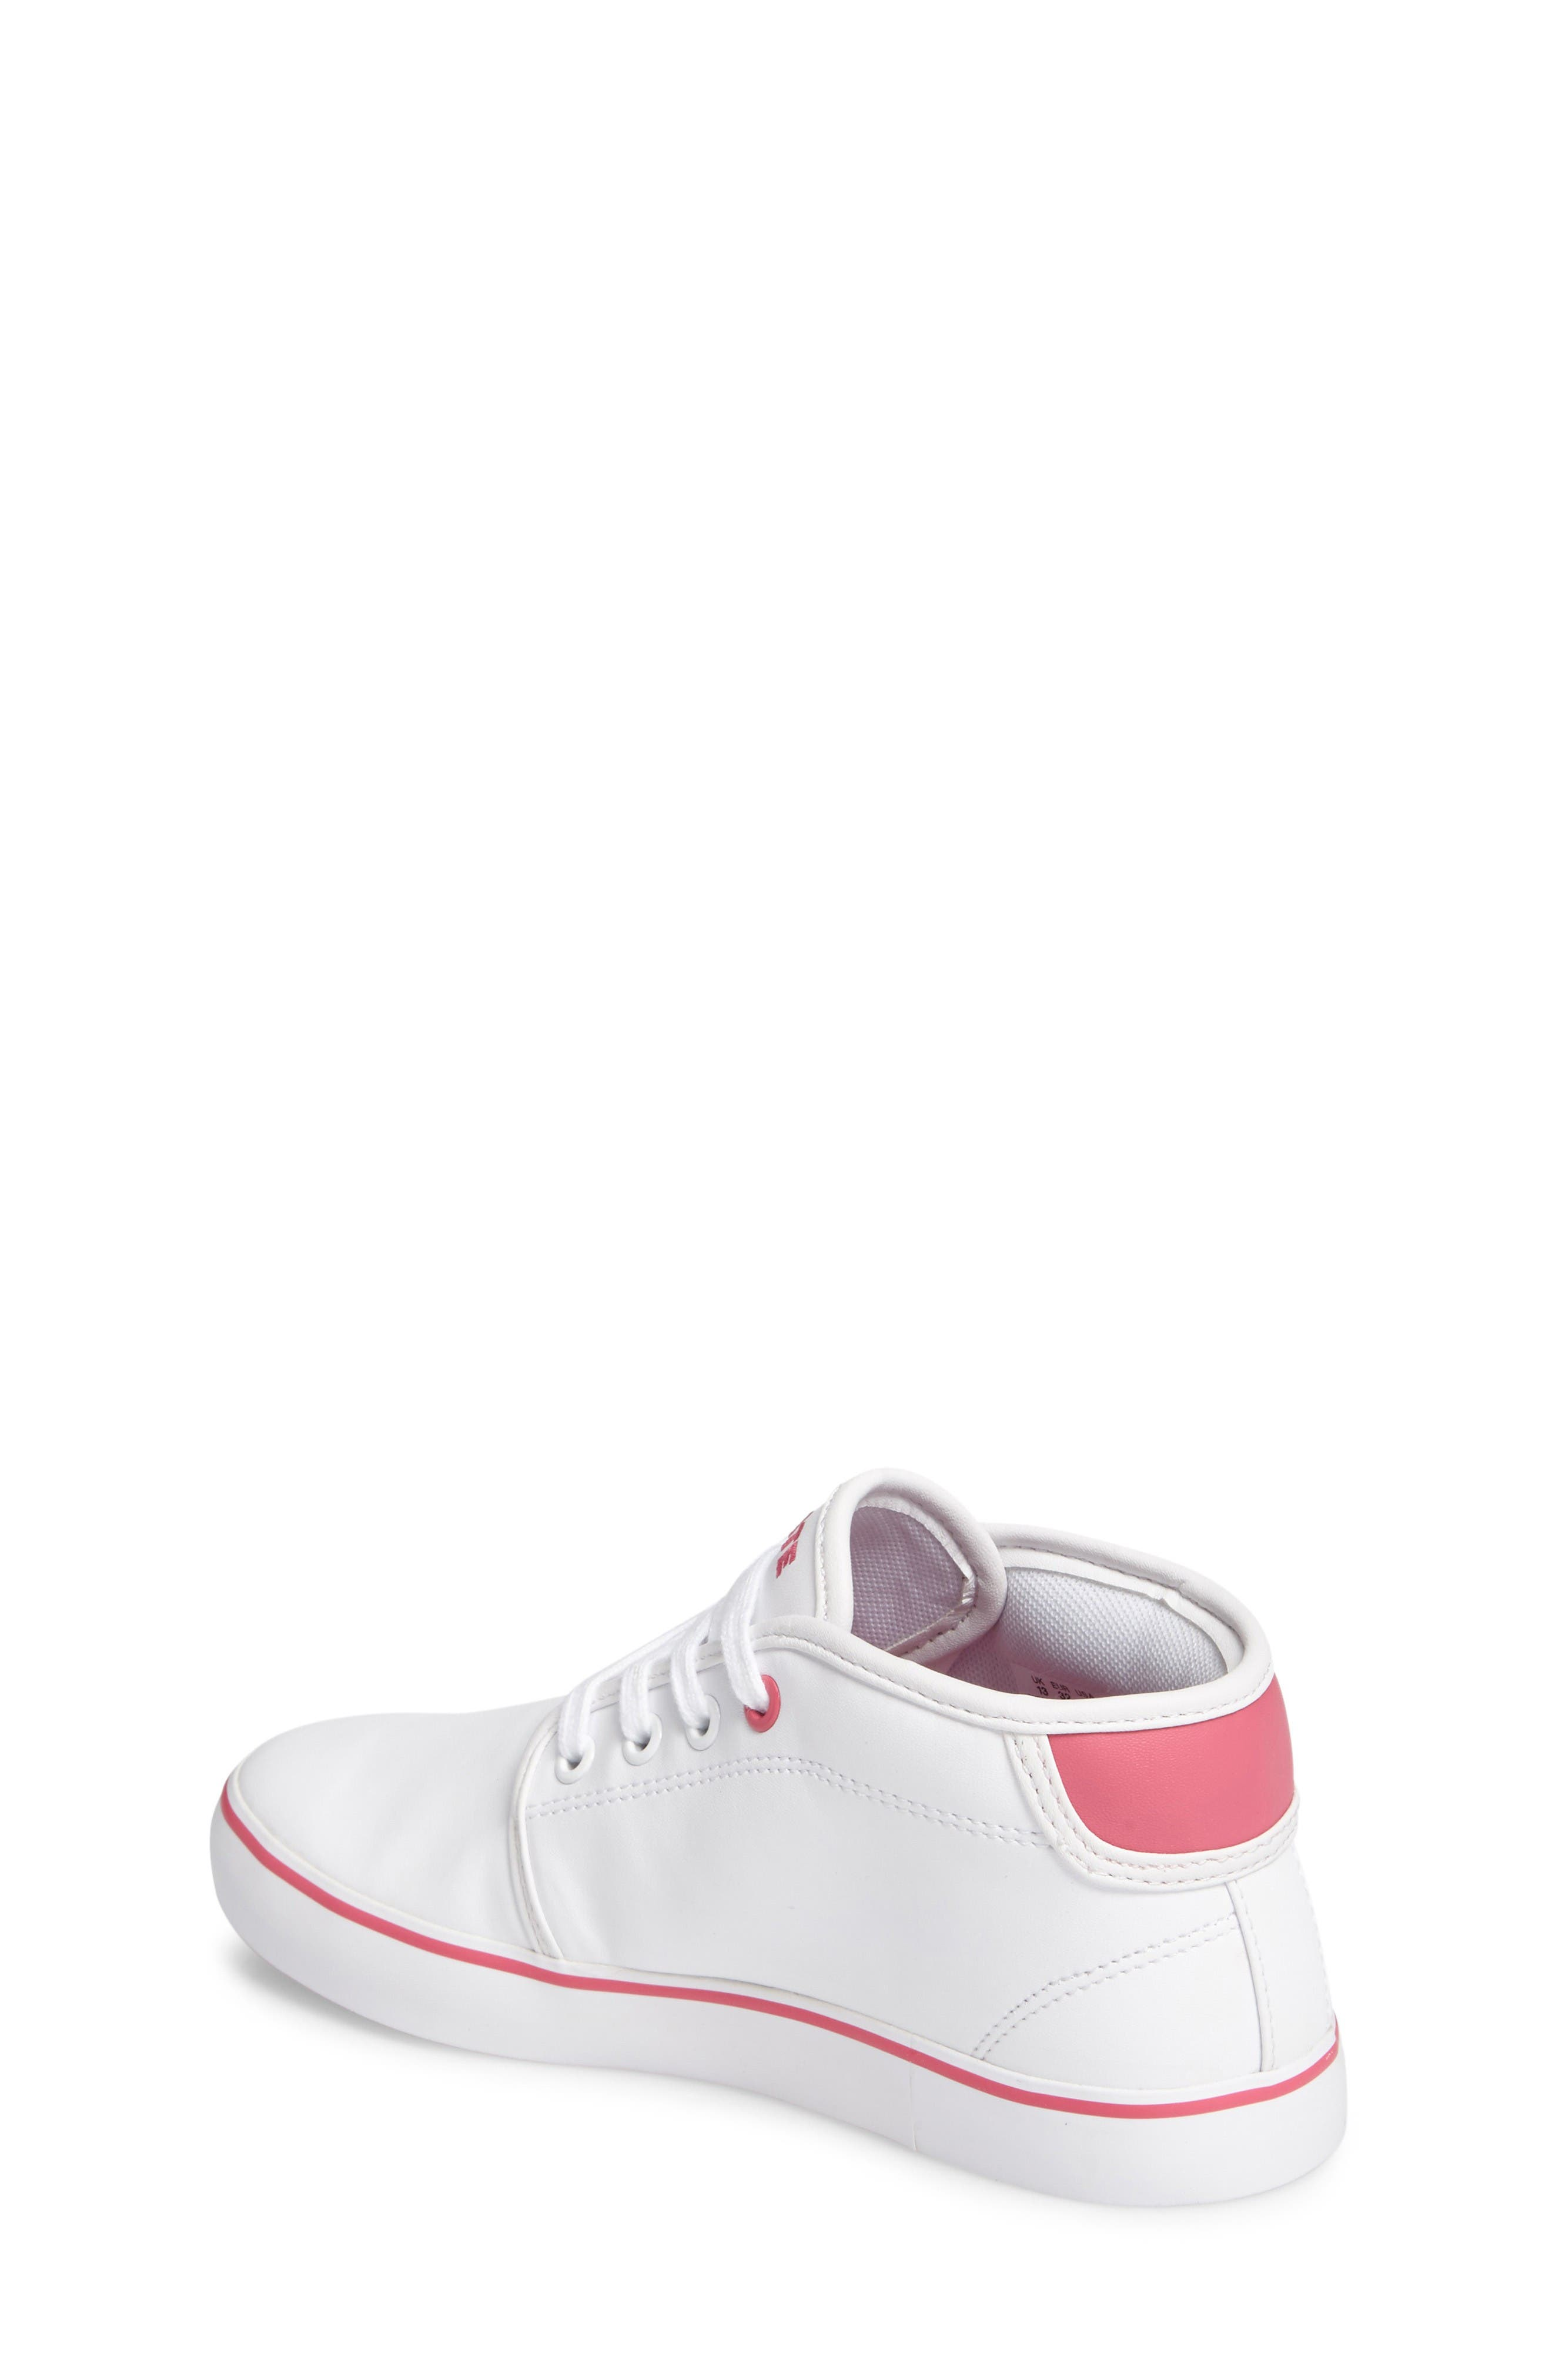 Ampthill Mid-Top Sneaker,                             Alternate thumbnail 2, color,                             White/ Pink